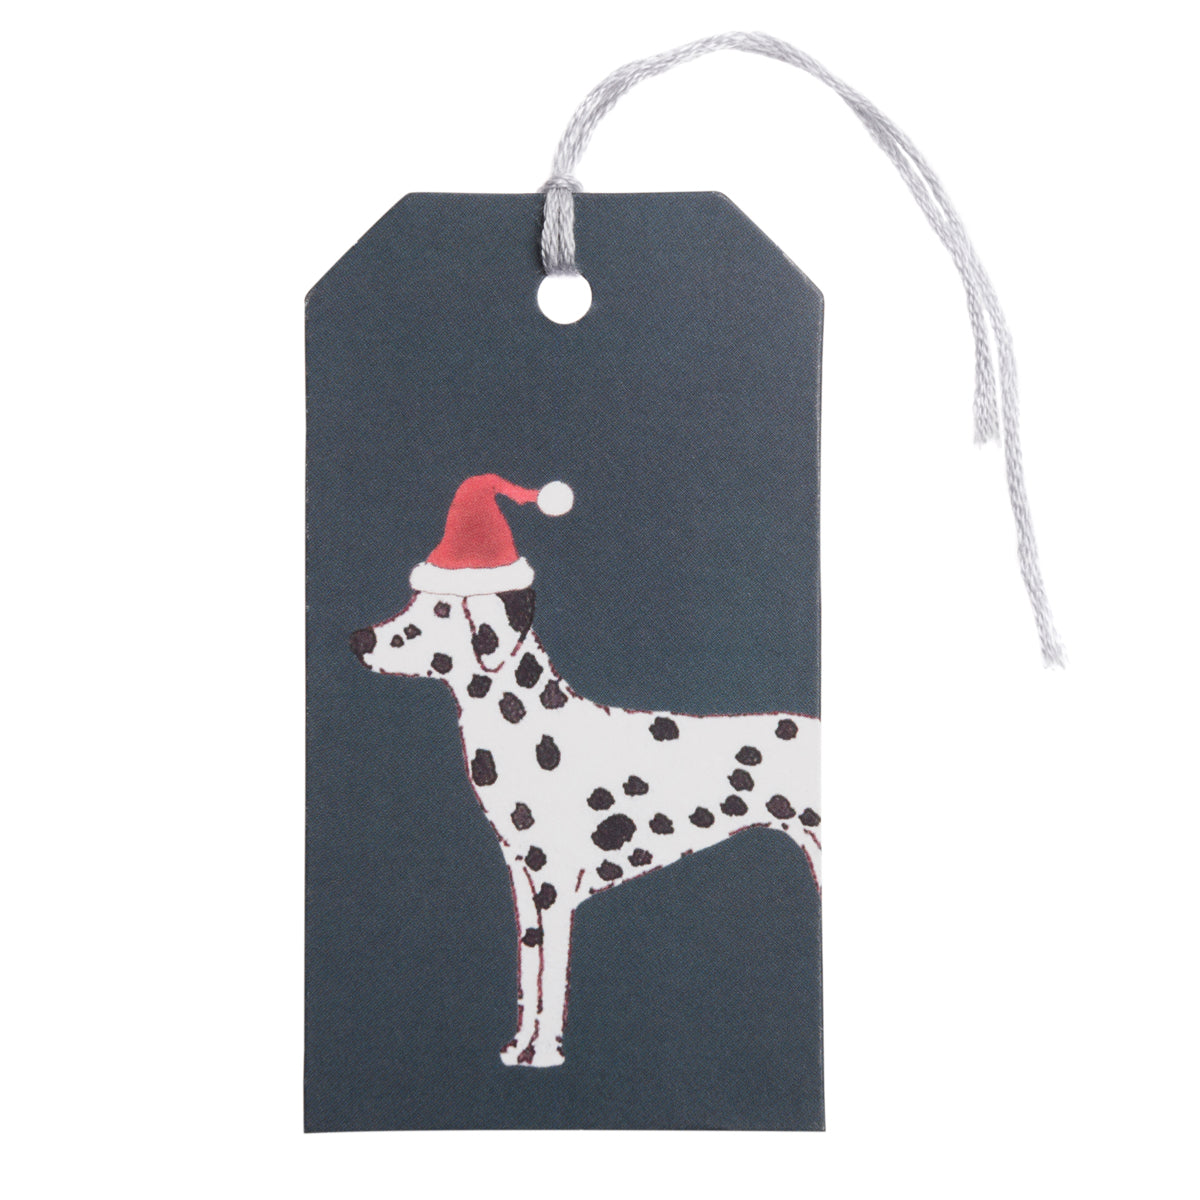 Fetch gift tag by Sophie Allport